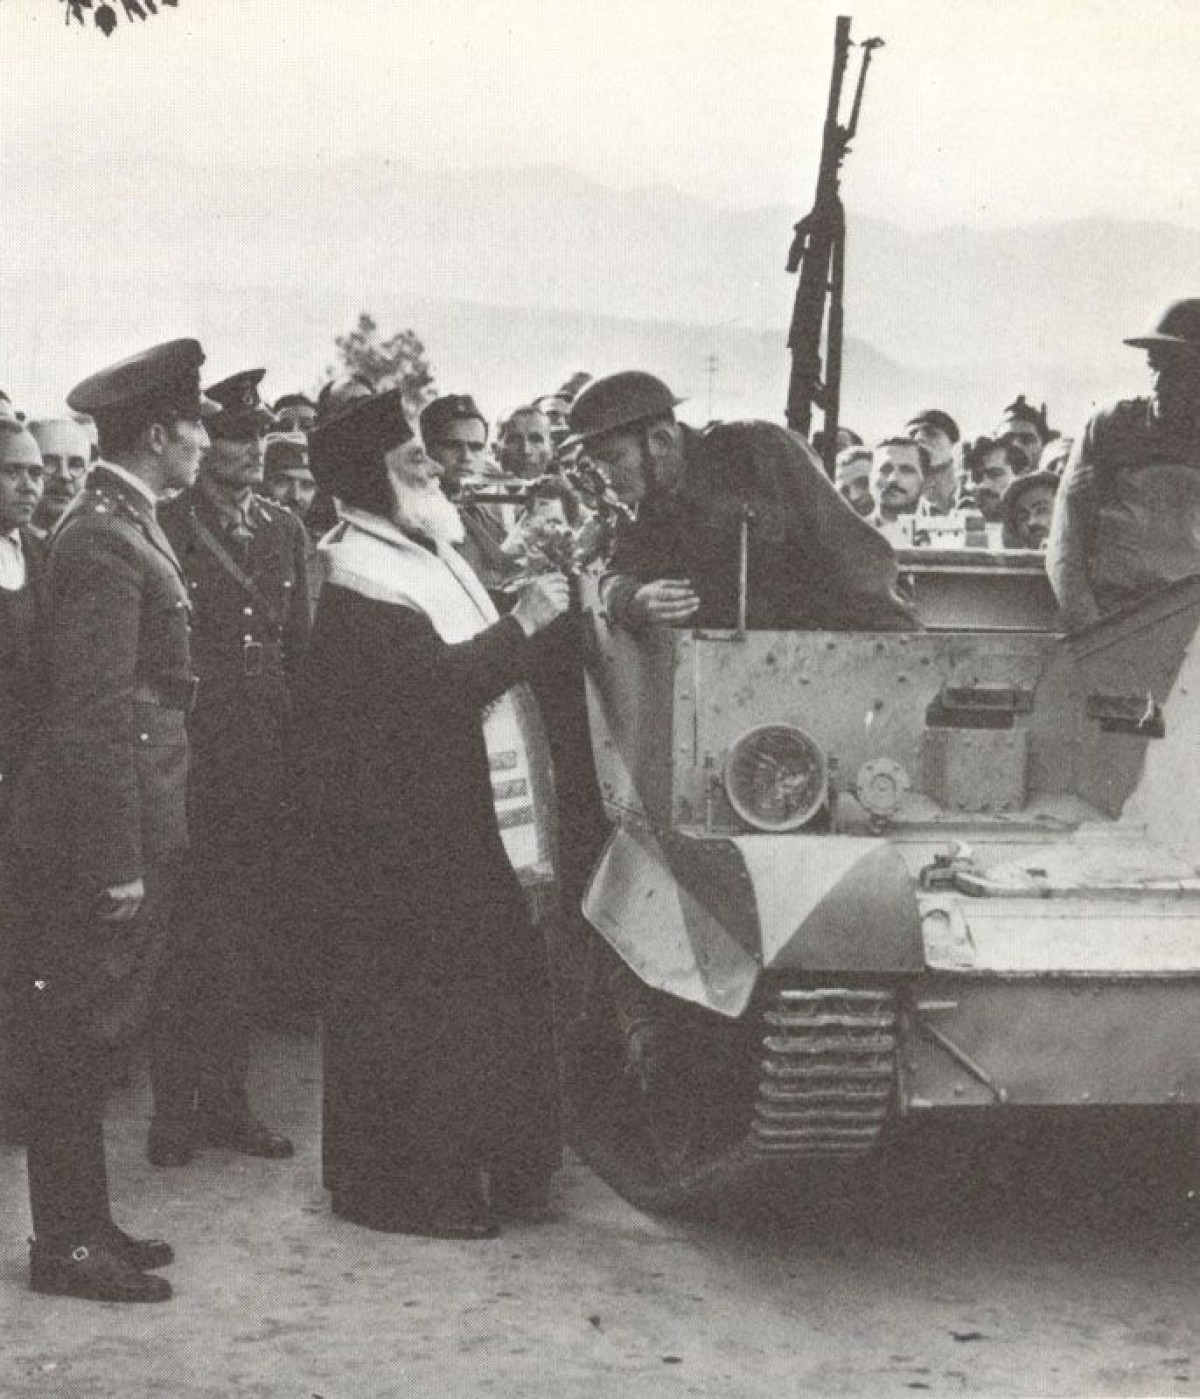 The Greek Orthodox Bishop of Canea (Crete) blesses British troops. In front is a Bren Gun carrier